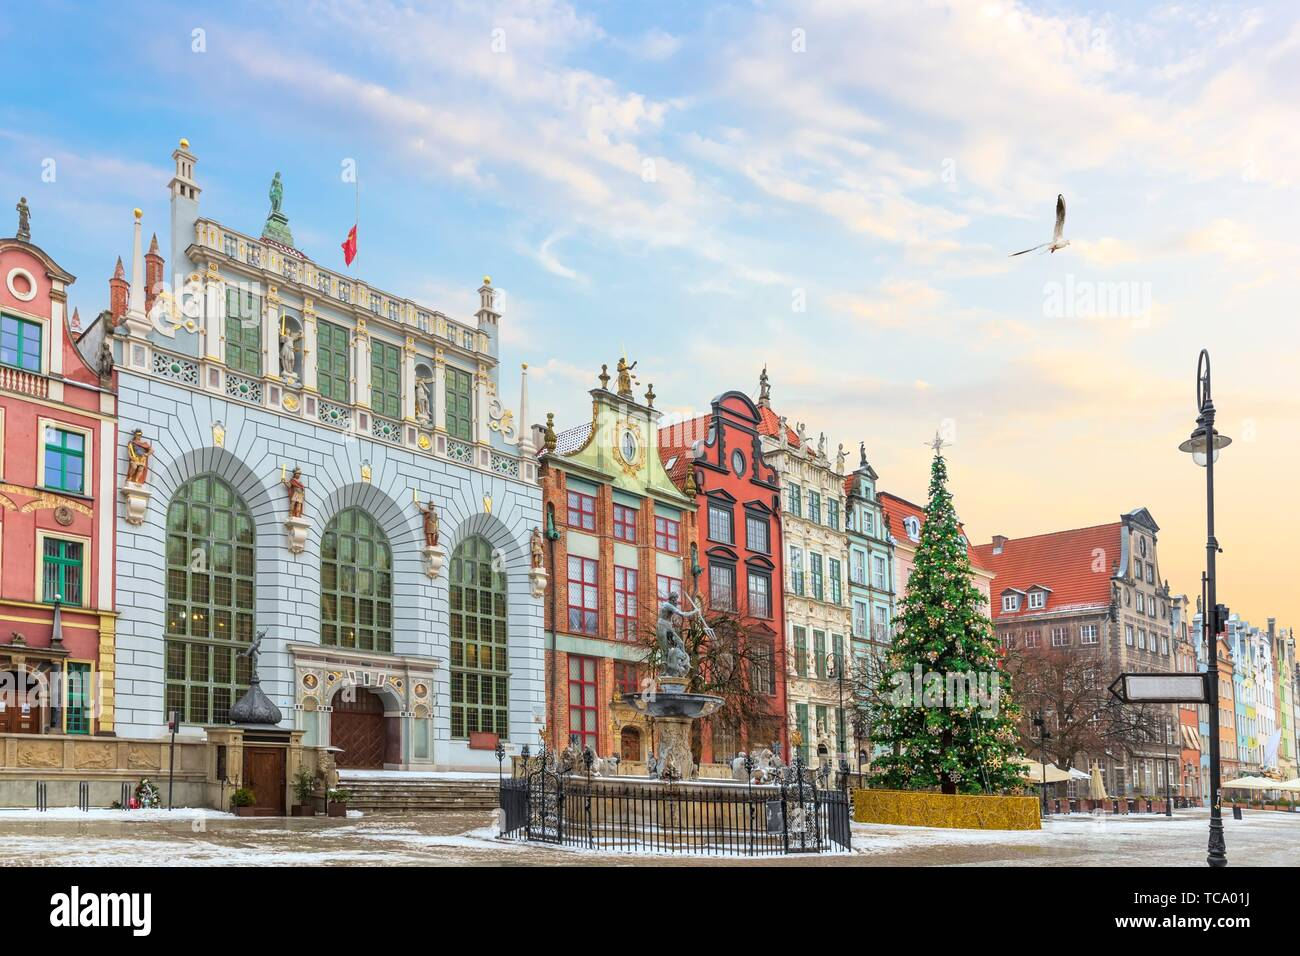 View on the Neptune's Fountain and the the Artus Court facade in Long Market, Gdansk, Poland, no people. Stock Photo